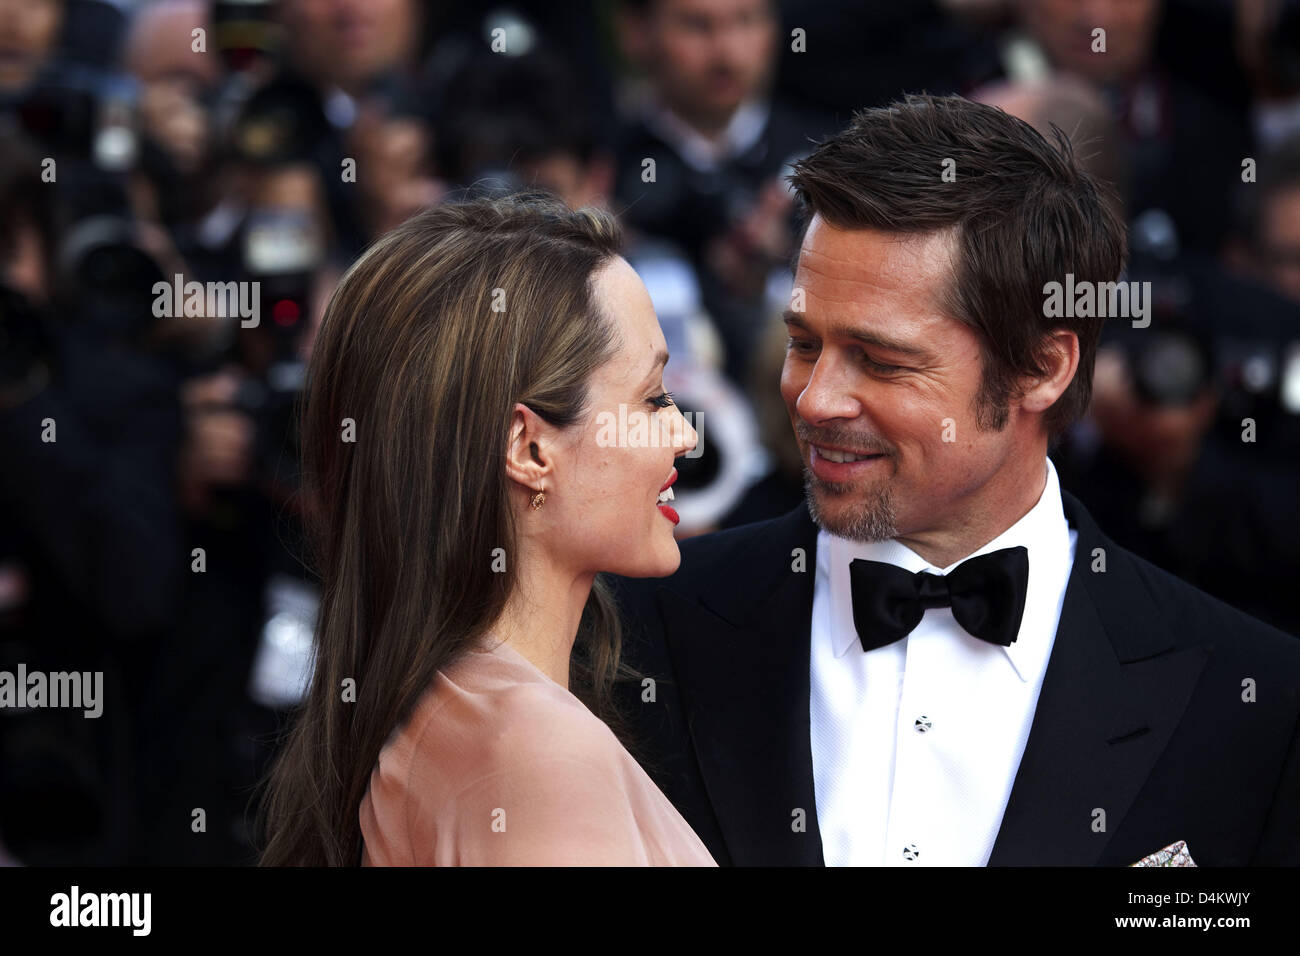 Brad Pitt and Angelina Jolie arrive for the world premiere of the film ?Inglorious Basterds? at the 62nd Cannes Stock Photo